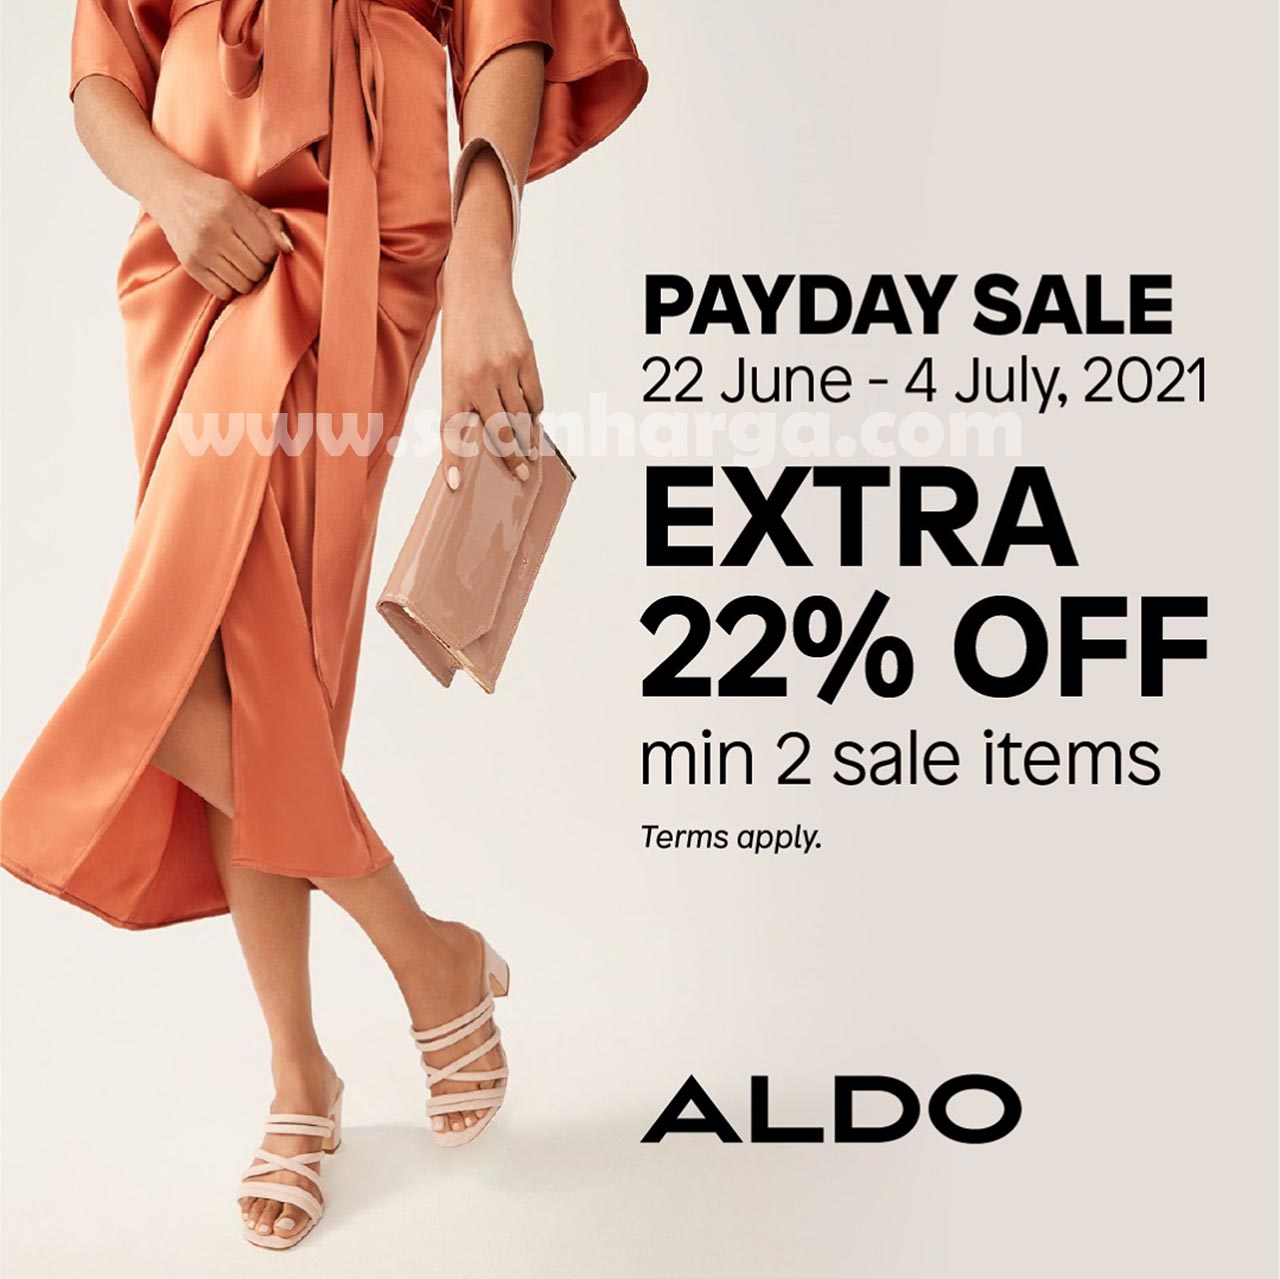 ALDO Shoes Promo PAYDAY SALE!  Extra 22% Off Min Purchase 2 Sale Item